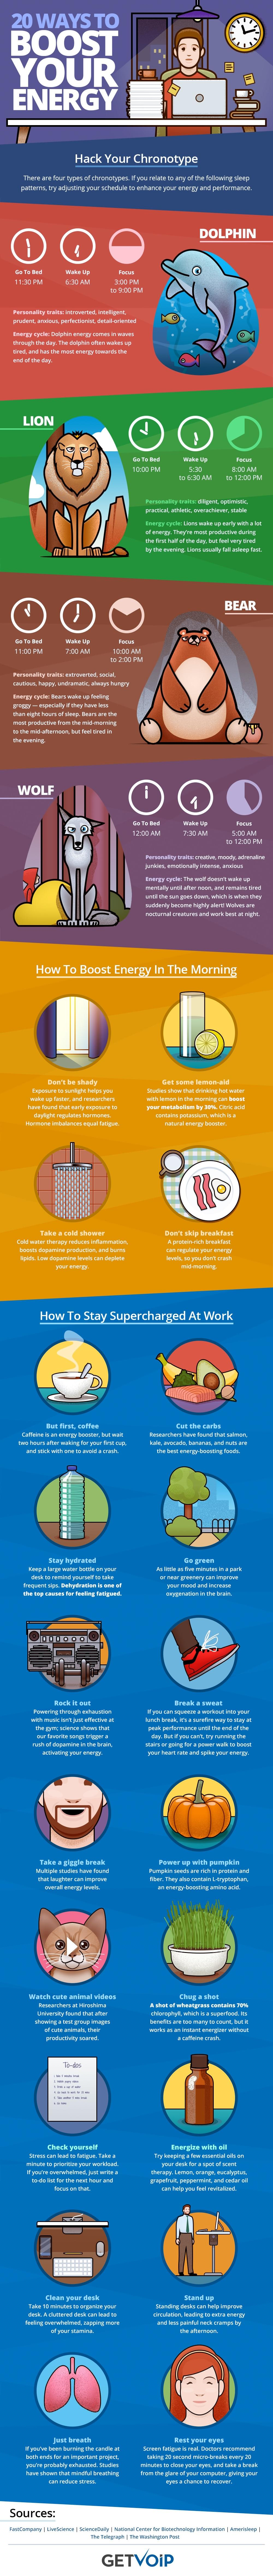 20 Ways to Avoid the Post-lunch Energy Dip at Work [Infographic